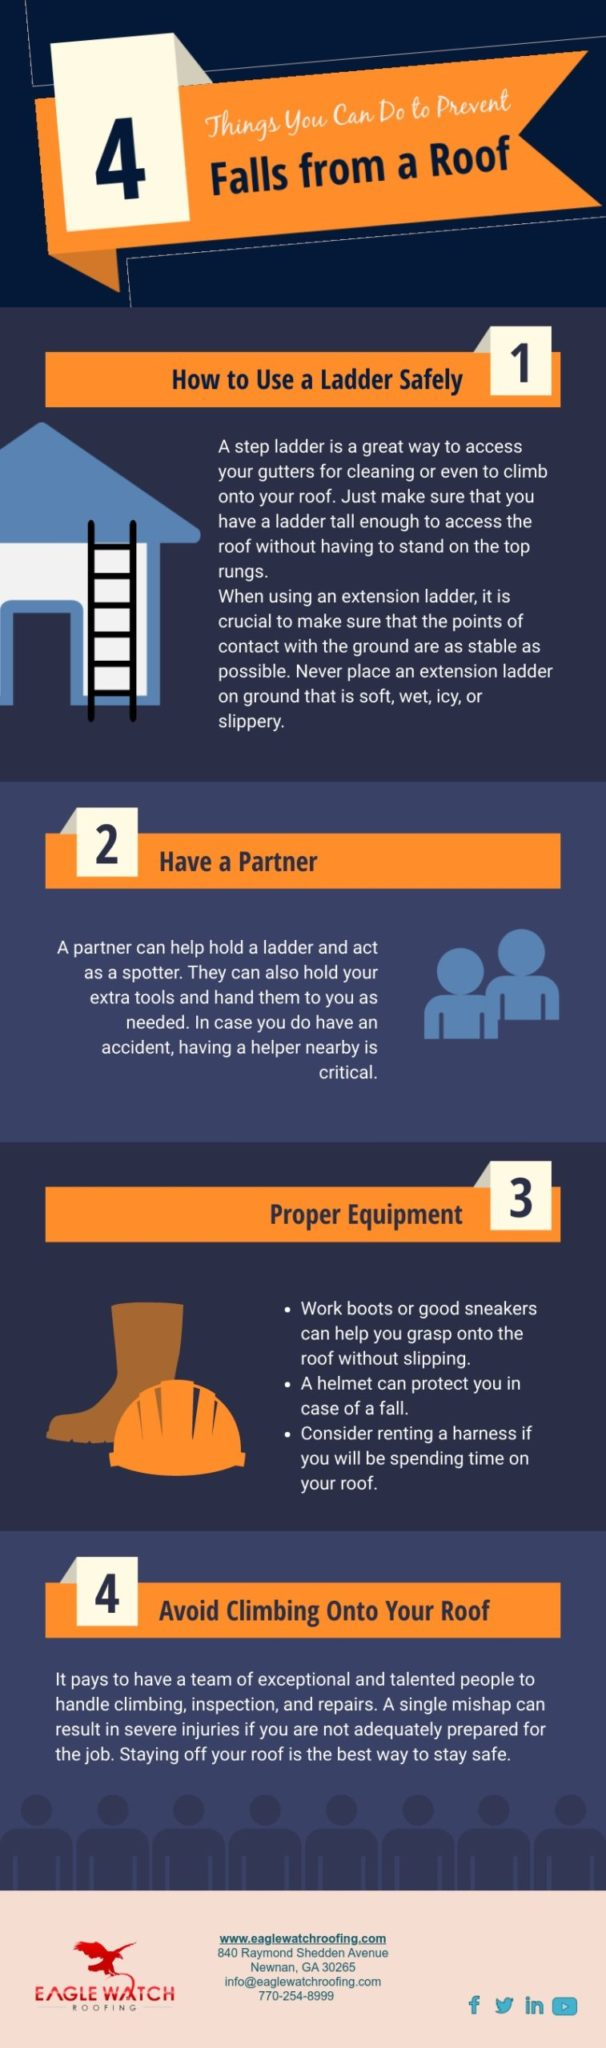 Ways to Prevent Falls On Your Roof [infographic]